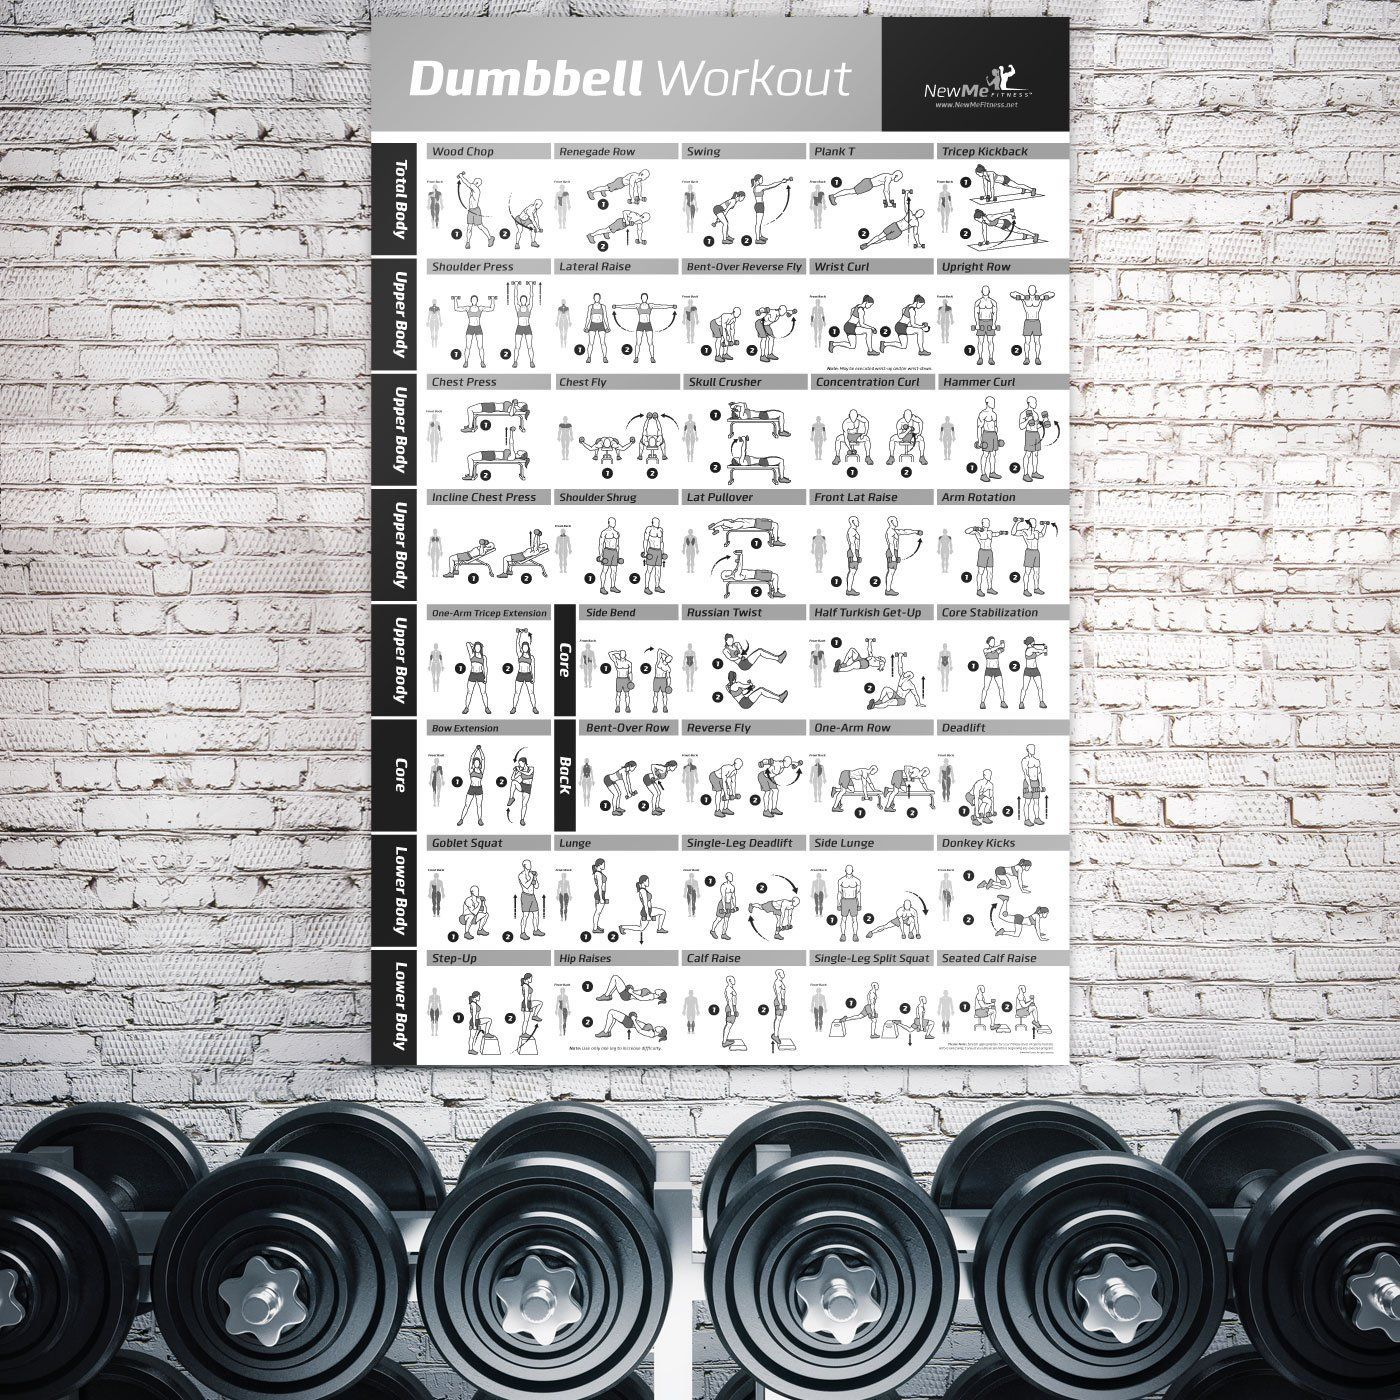 Dumbbell Exercise Poster Laminated Workout Strength Training Chart